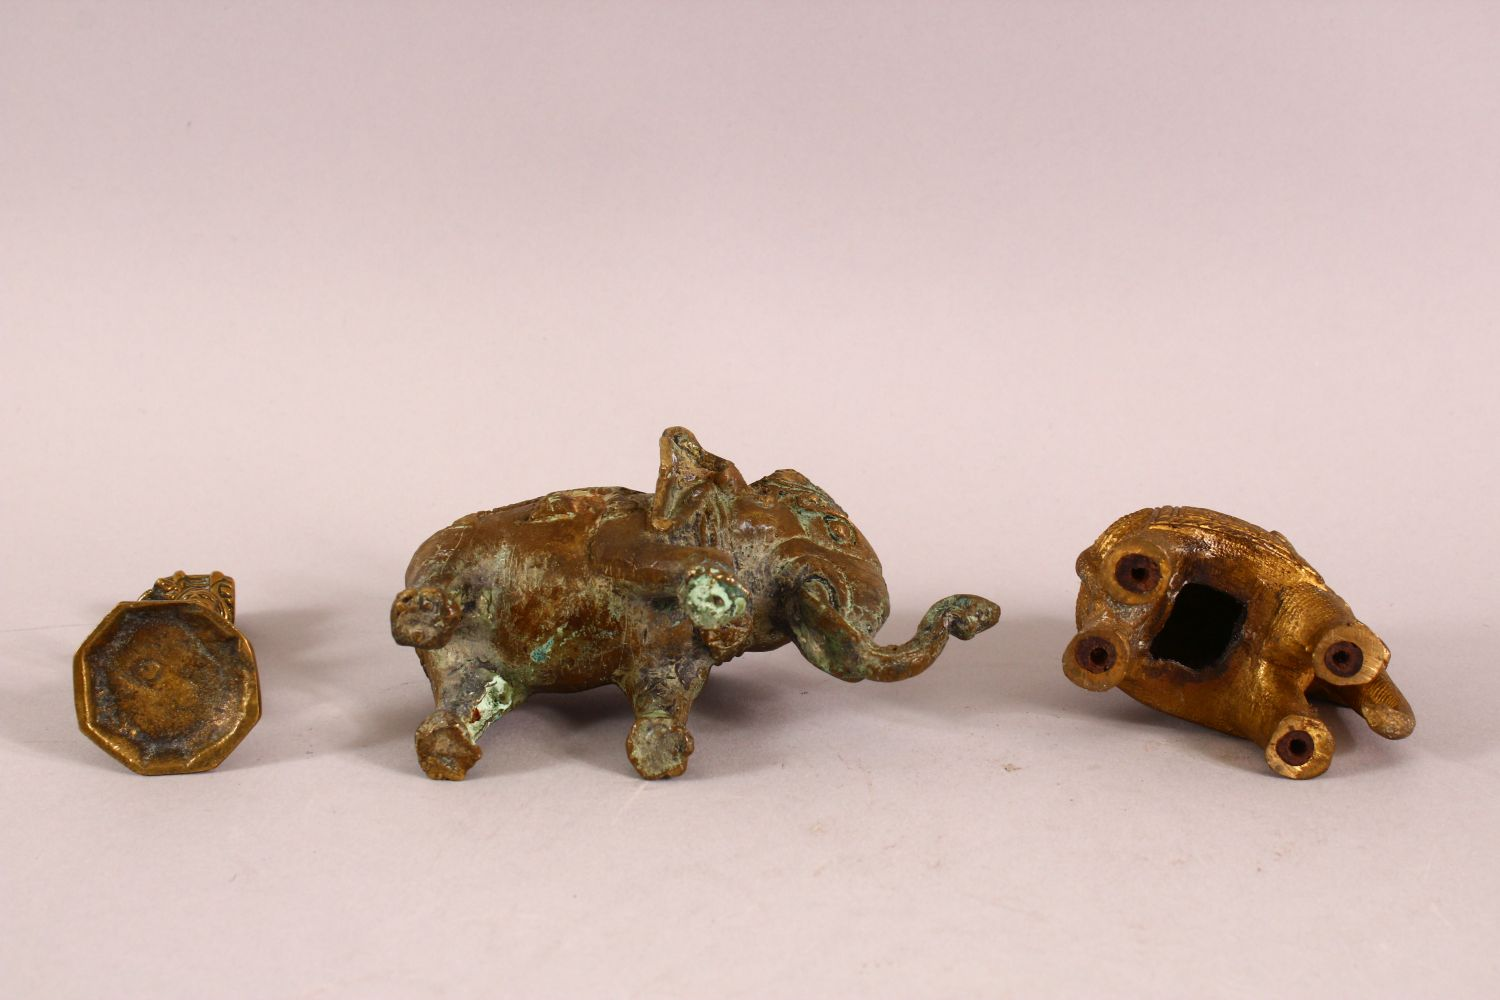 THREE INDIAN GILT METAL FIGURES, two elephant and a figure. - Image 3 of 3